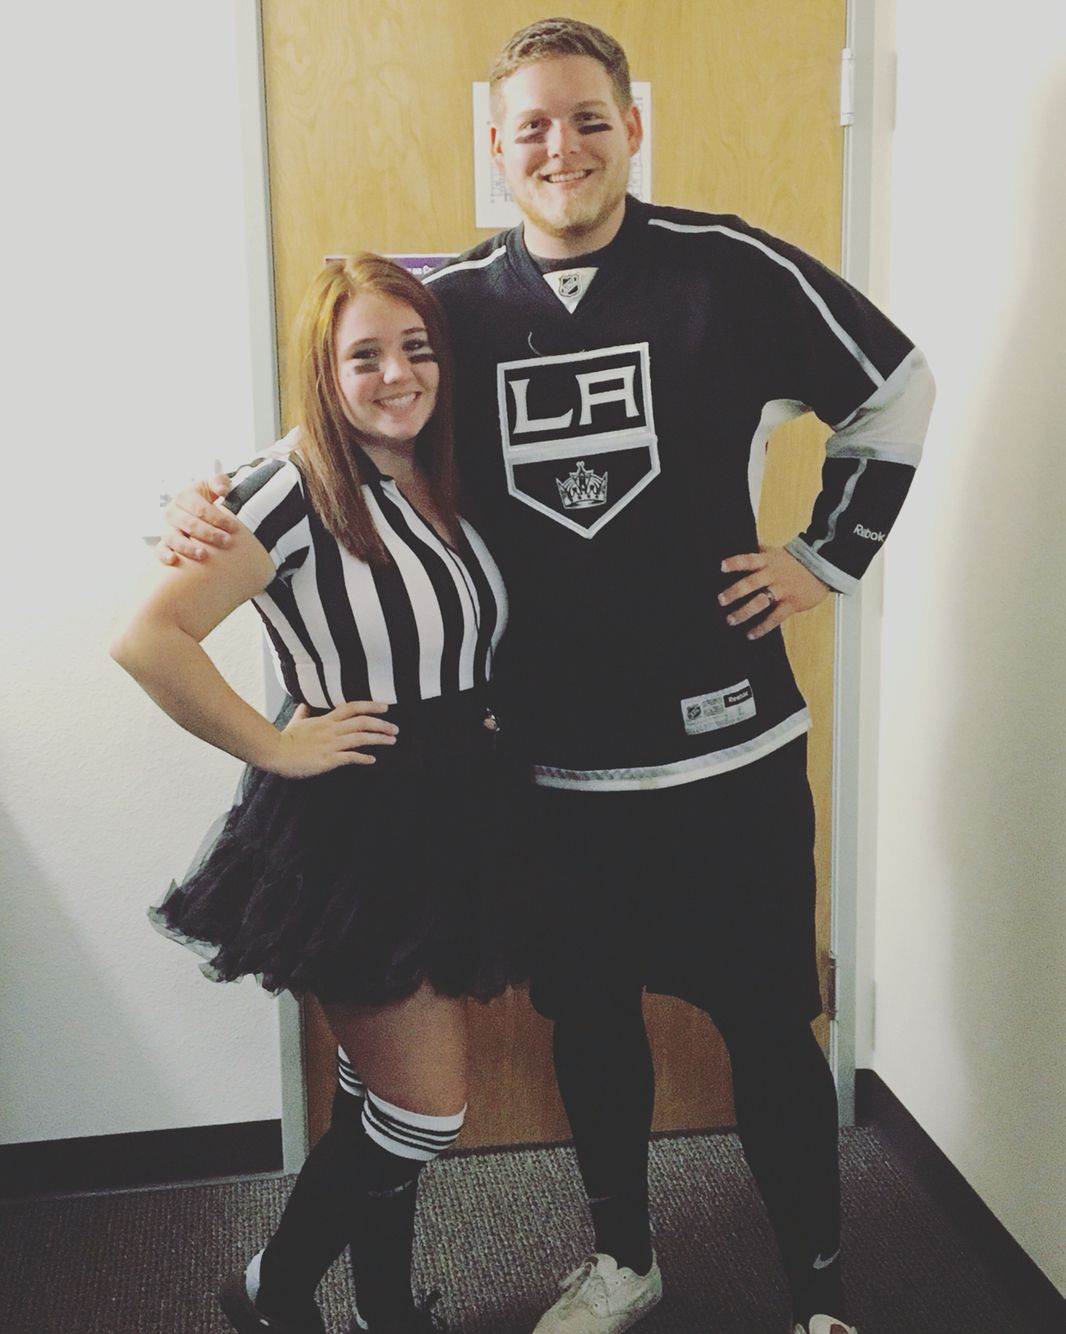 Referee And Hockey Player Halloween Costume Halloween Sports Goodwill Diy Halloween Costumes To Make Couple Halloween Couple Halloween Costumes